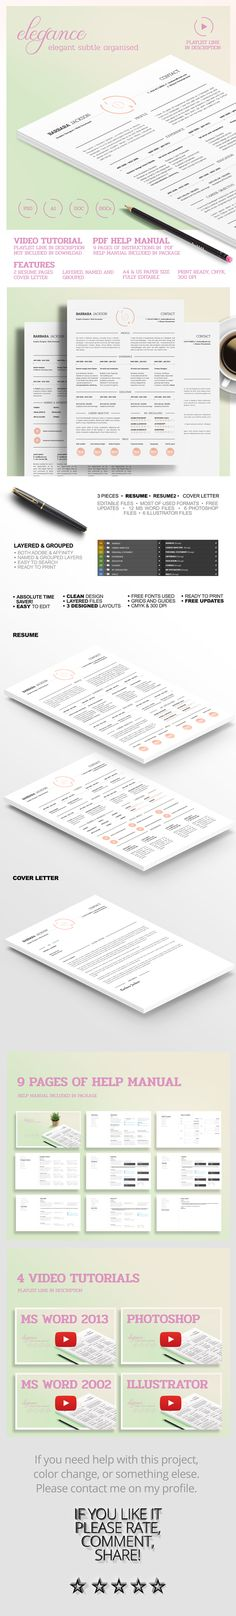 Elegant Style Resume and CV If, tyxgb76aj - good looking resumes